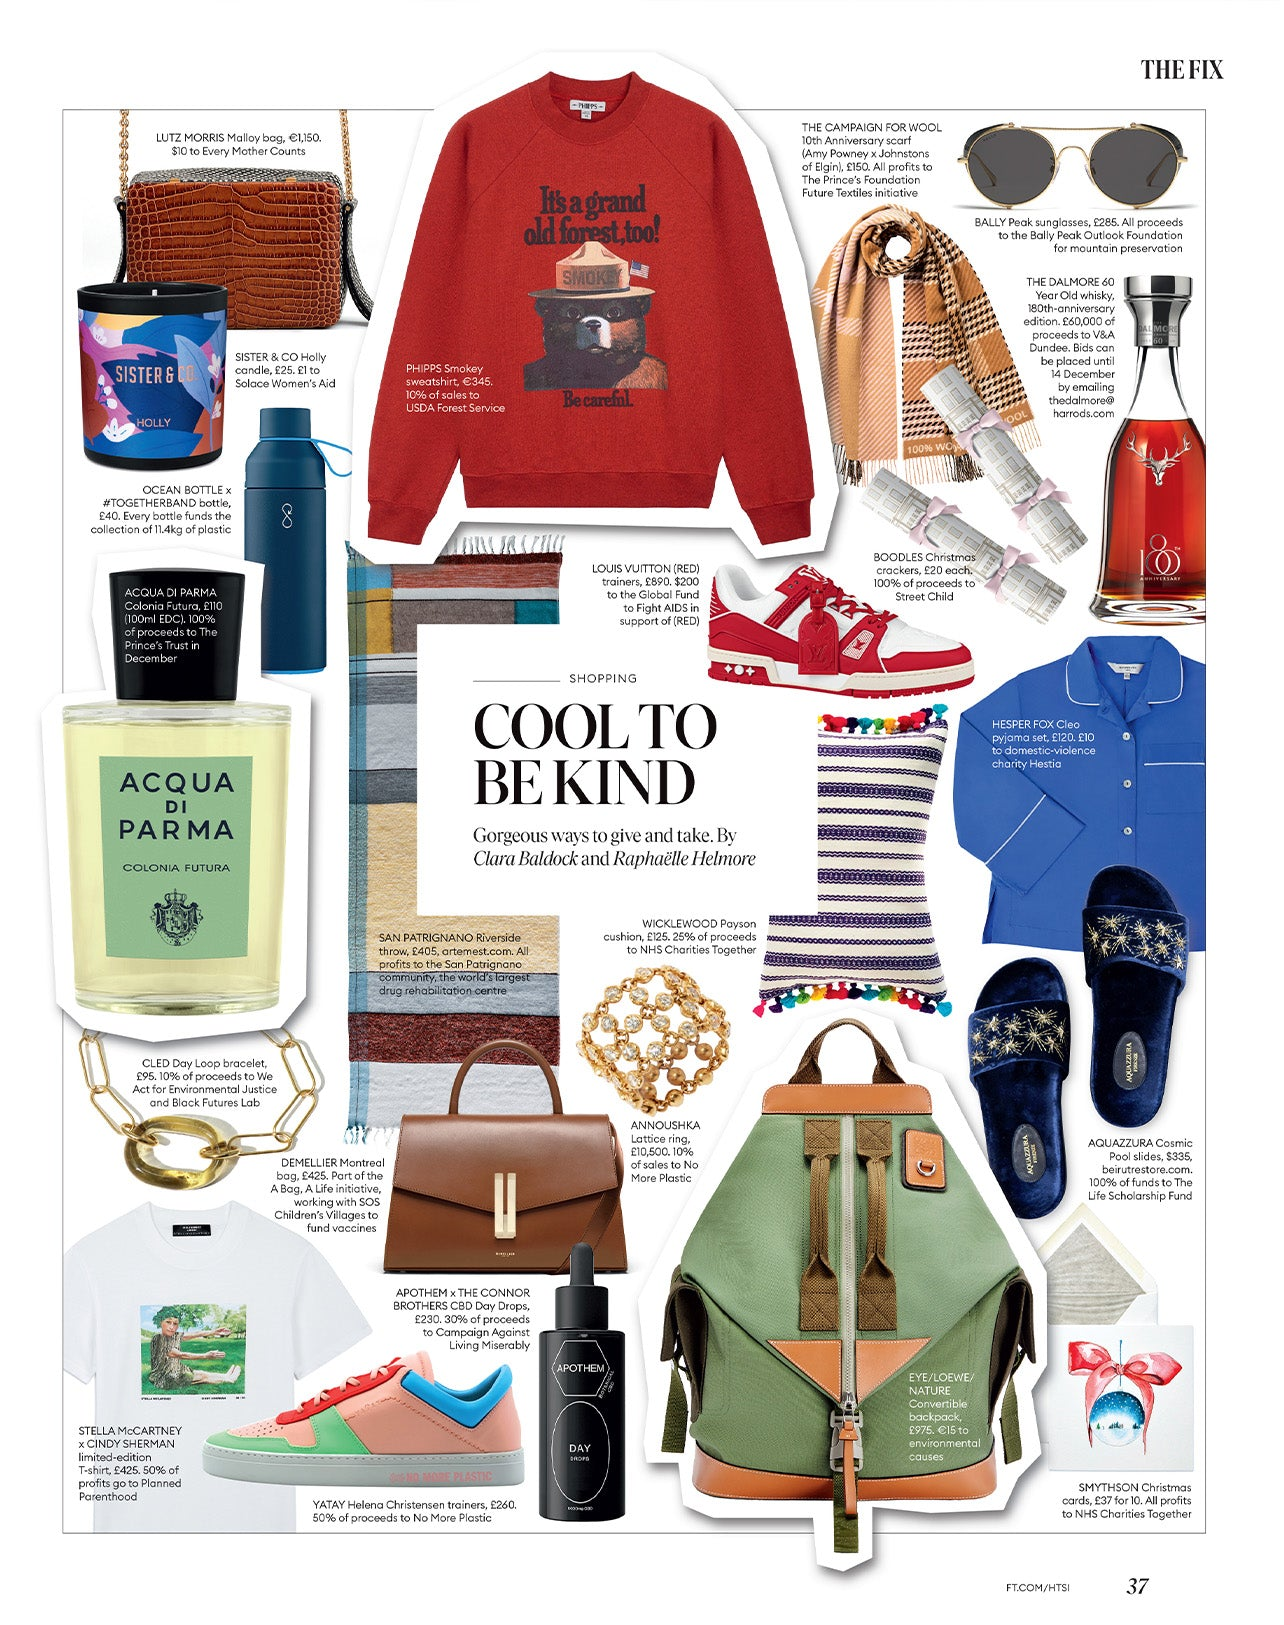 wicklewood payson cushion featured in How to Spend It Magazine by Finantial Times